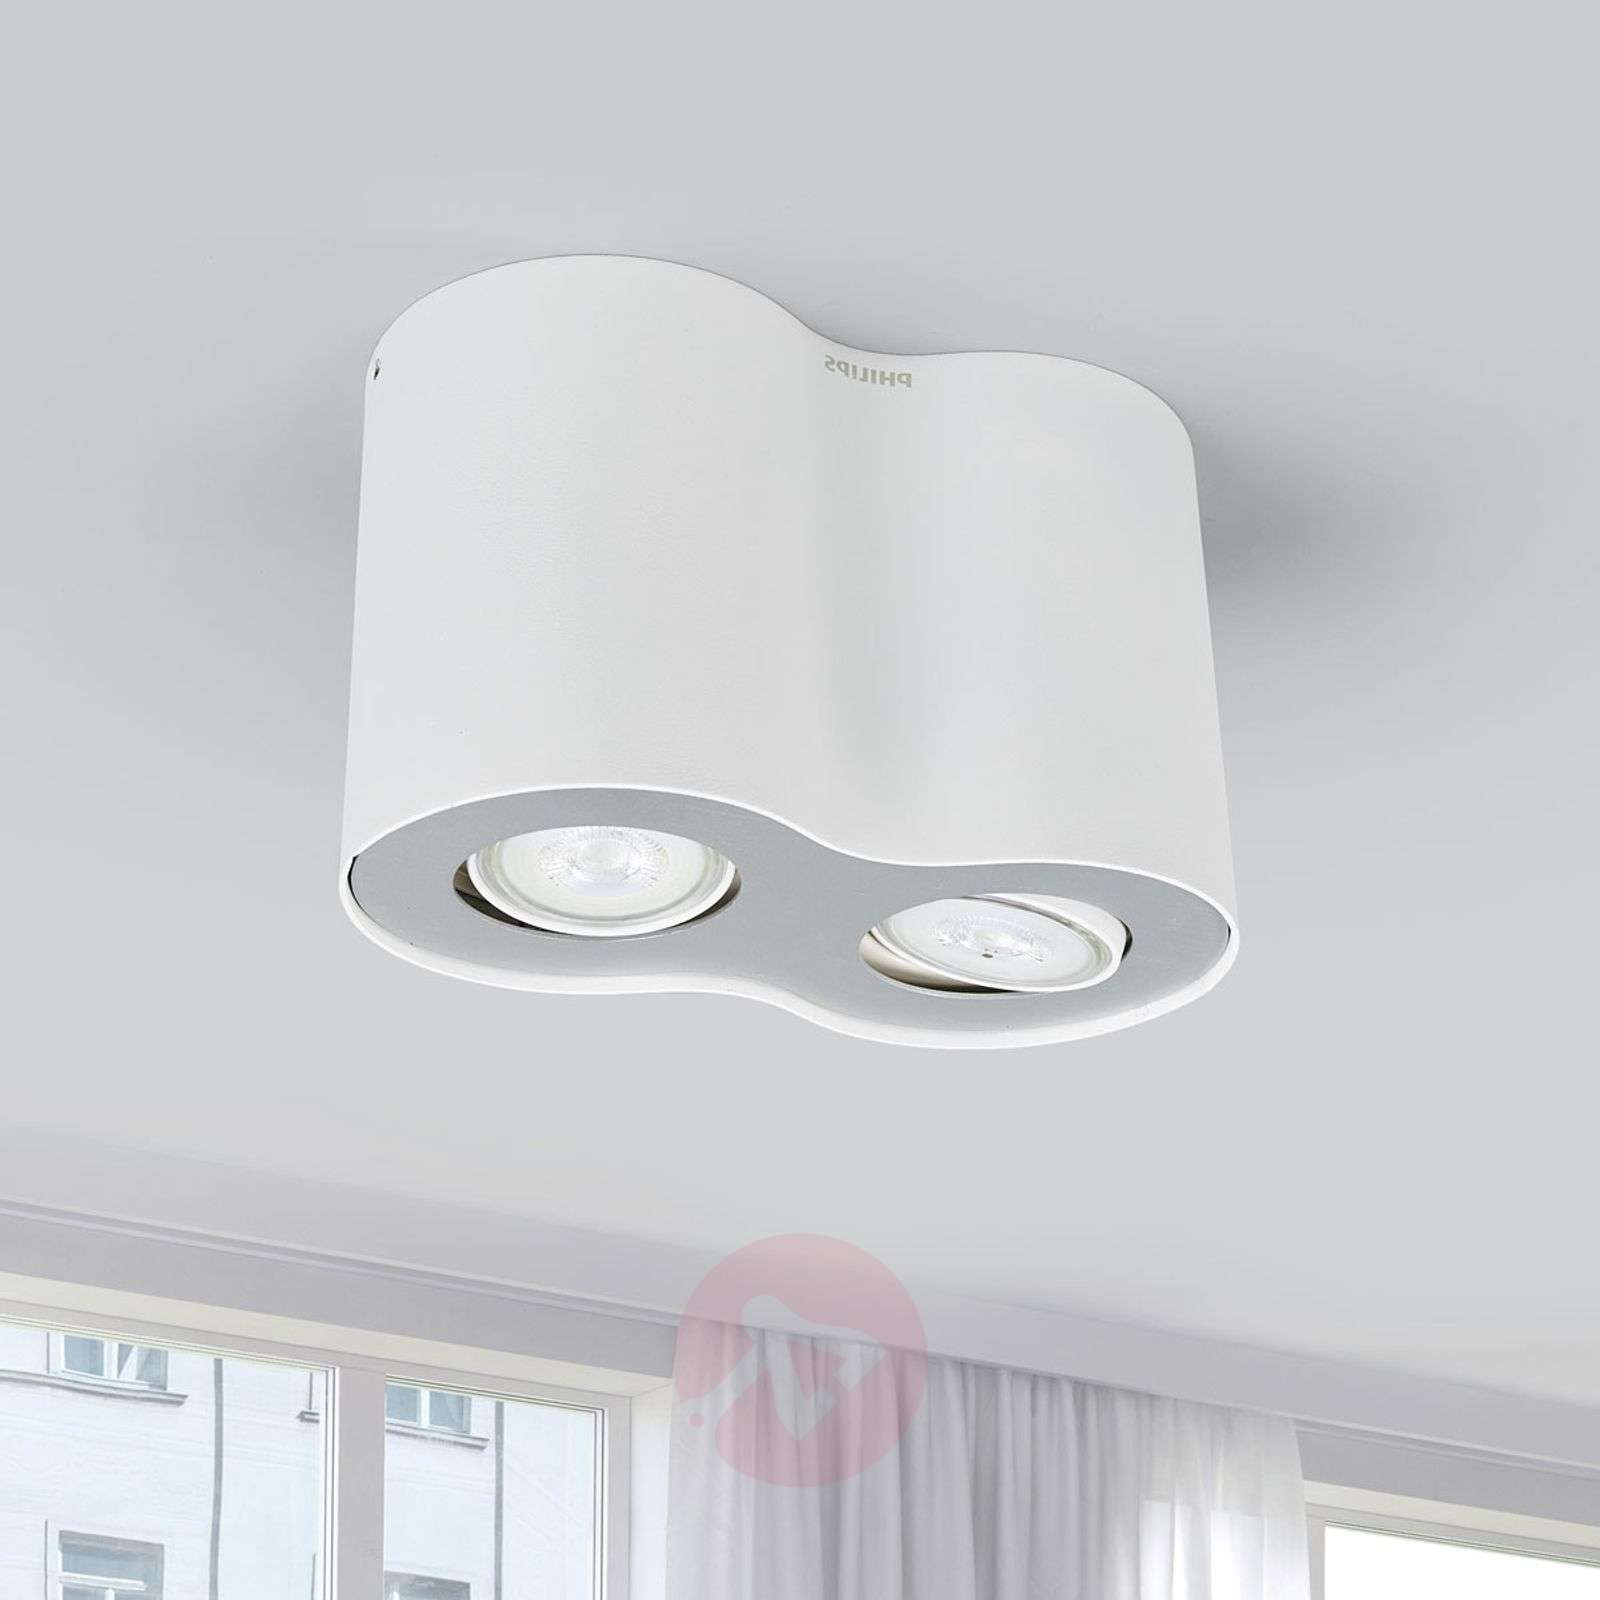 2-Spots LED opbouwplafondlamp Pillar in wit-7531895-01